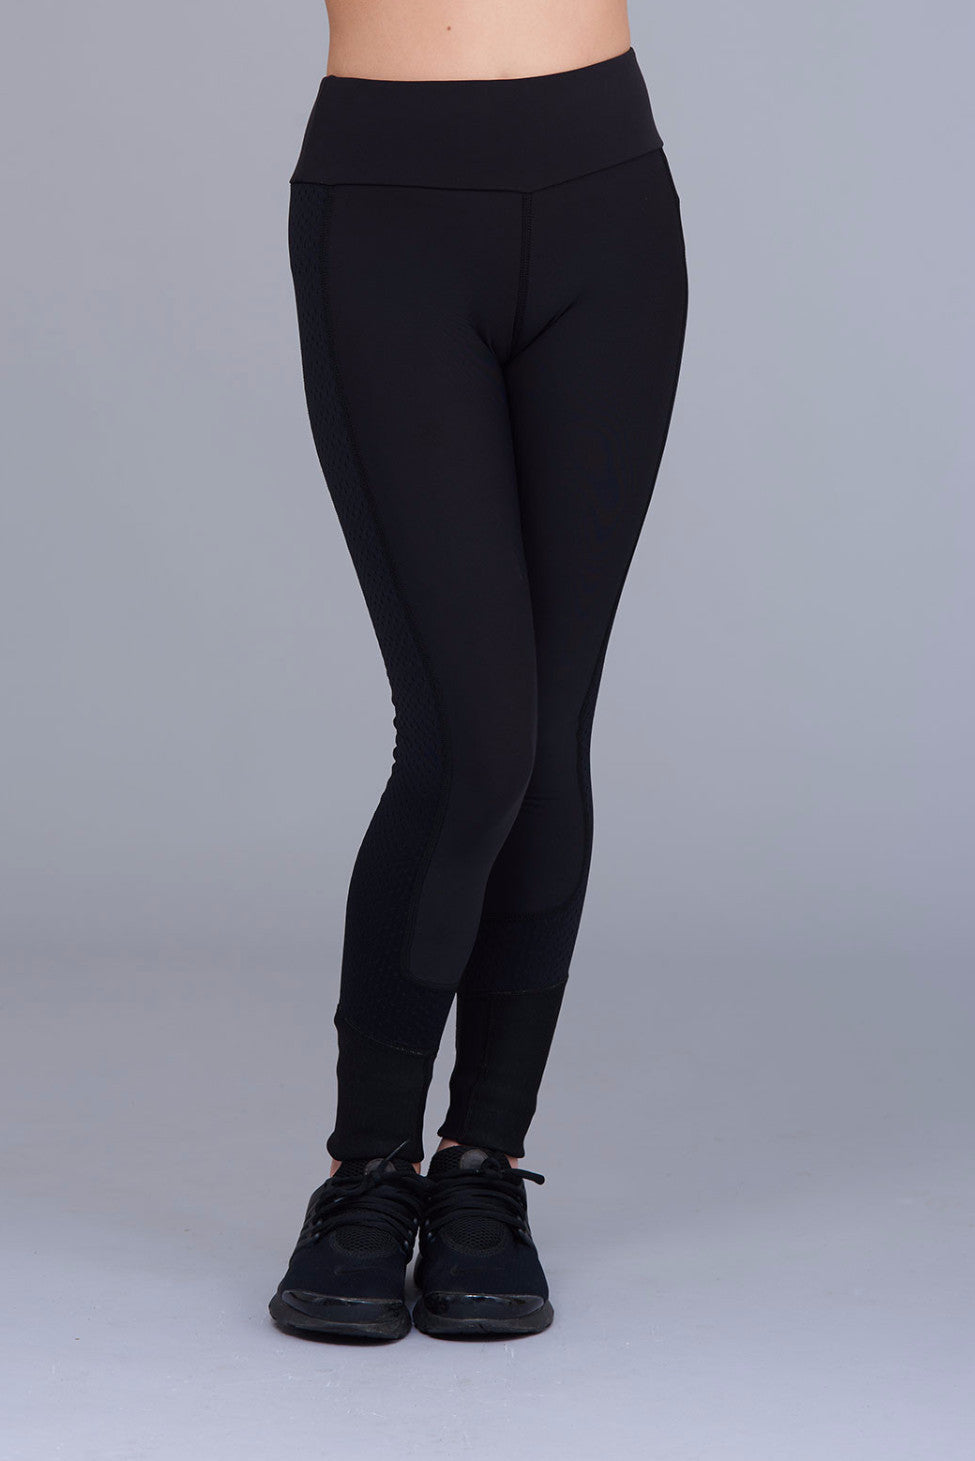 Passion non-slip leggings-8